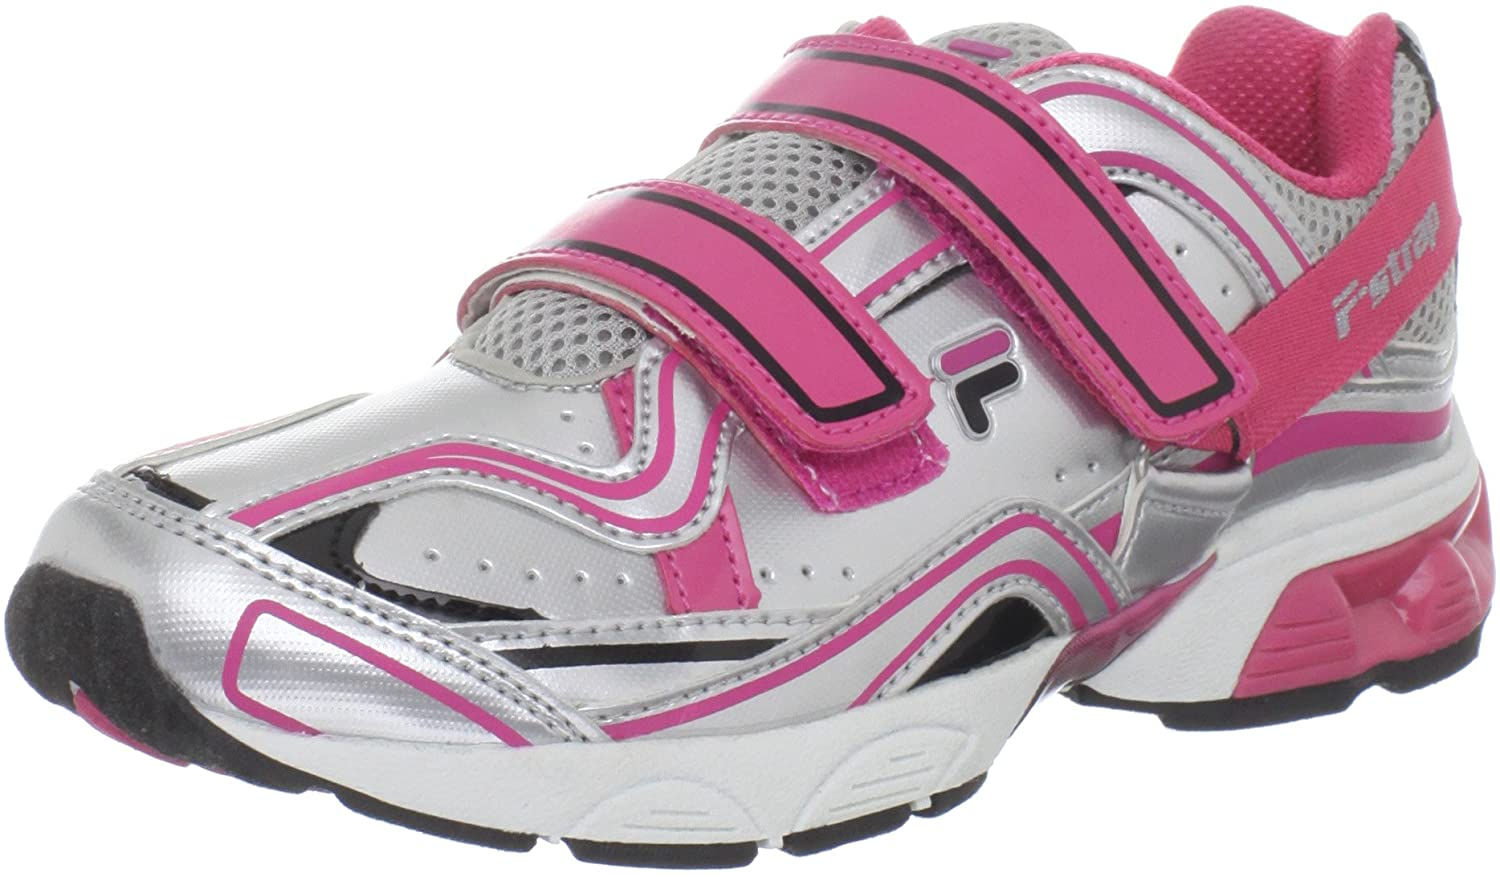 Fila Kid's F-Strap Runner (Toddler/Little Kid/Big Kid)